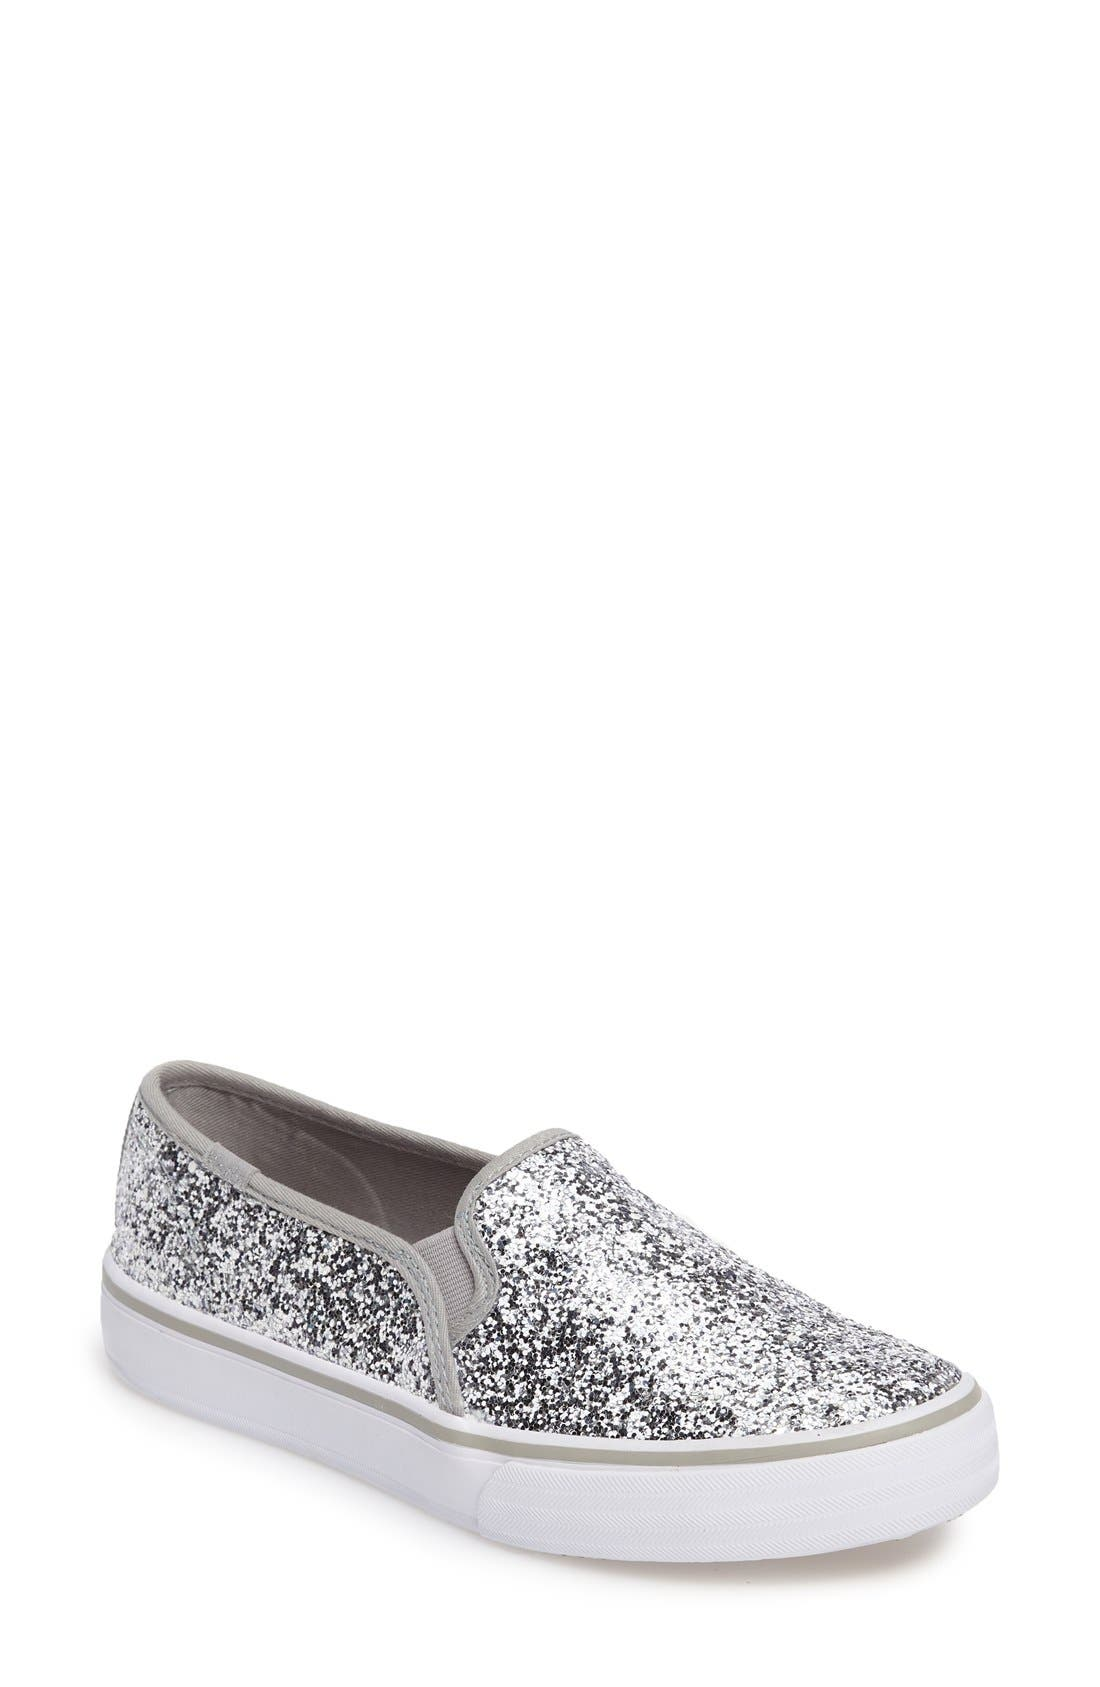 Main Image - Keds® Double Decker Glitter Slip-On Sneaker (Women)